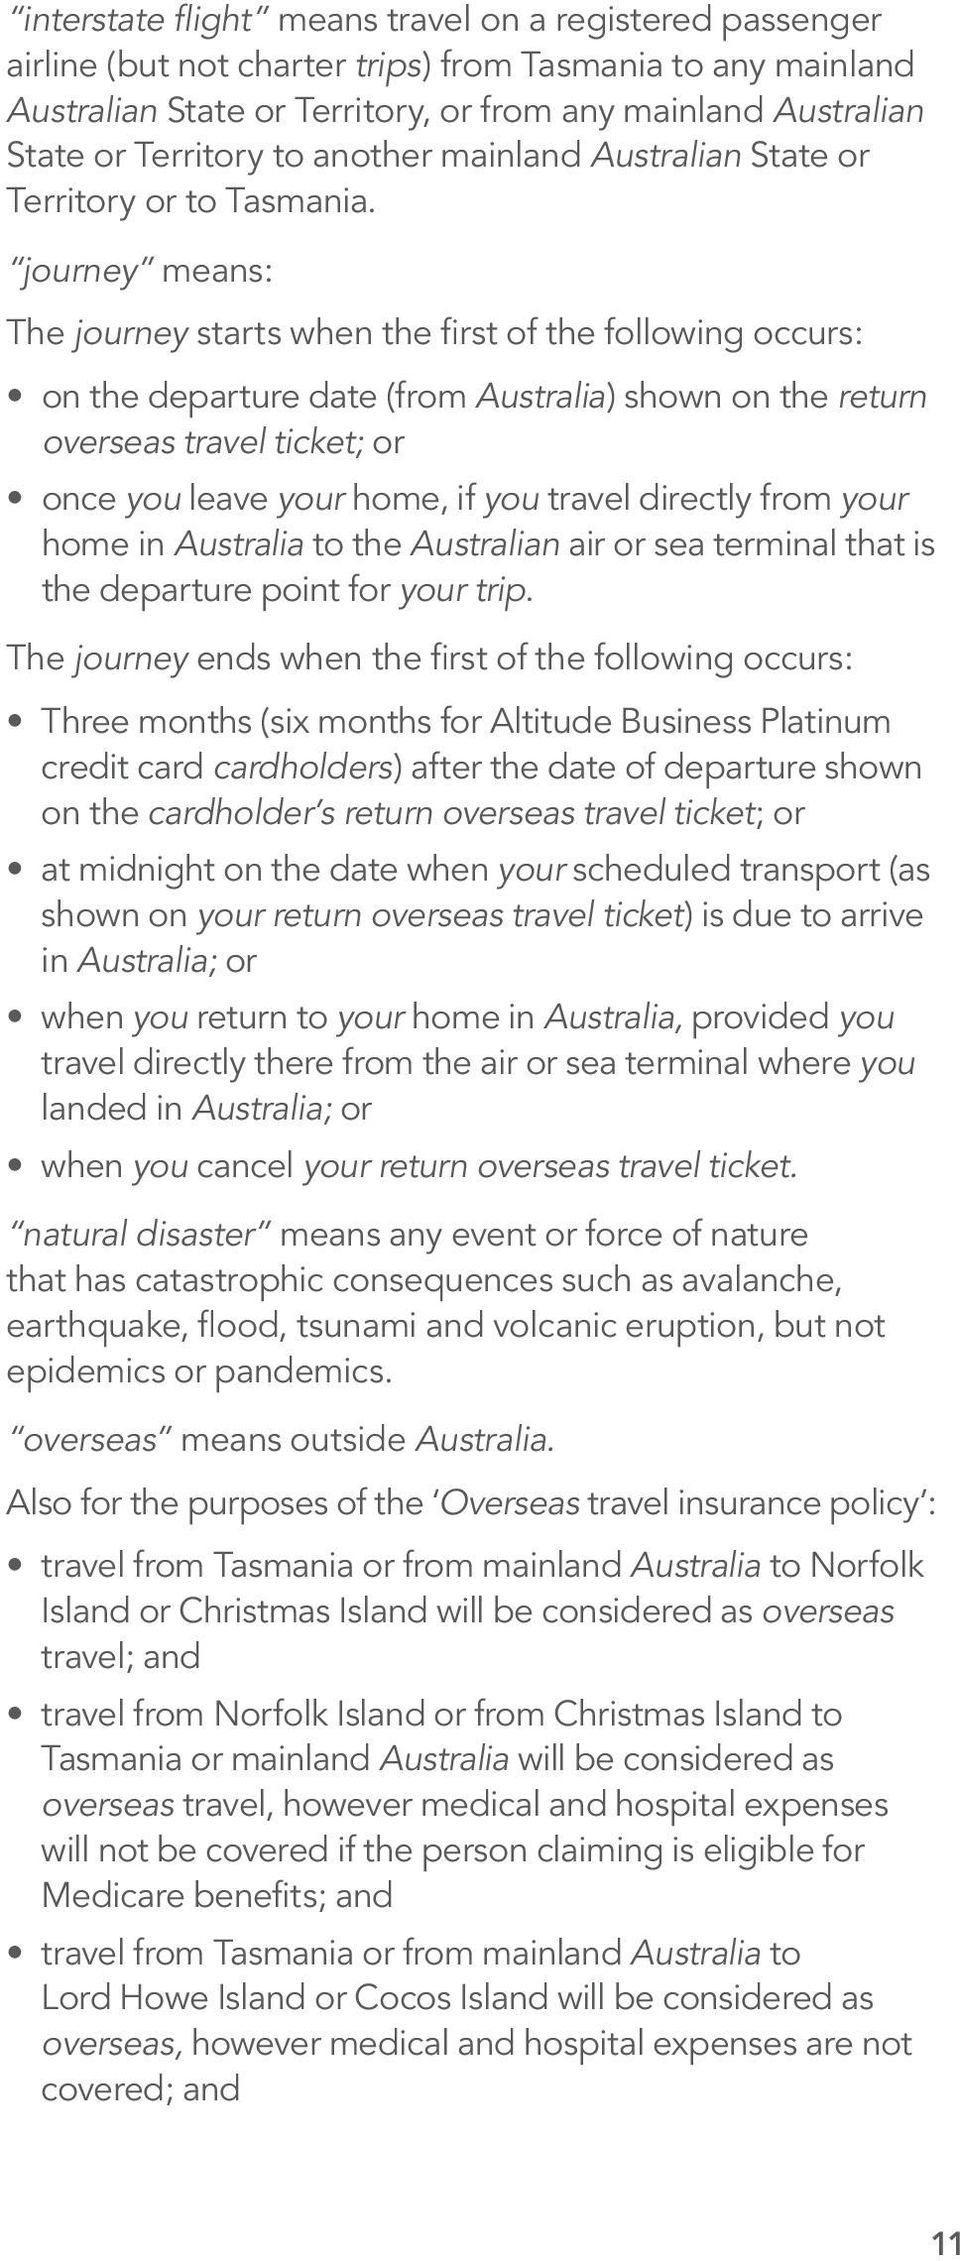 journey means: The journey starts when the first of the following occurs: on the departure date (from Australia) shown on the return overseas travel ticket; or once you leave your home, if you travel